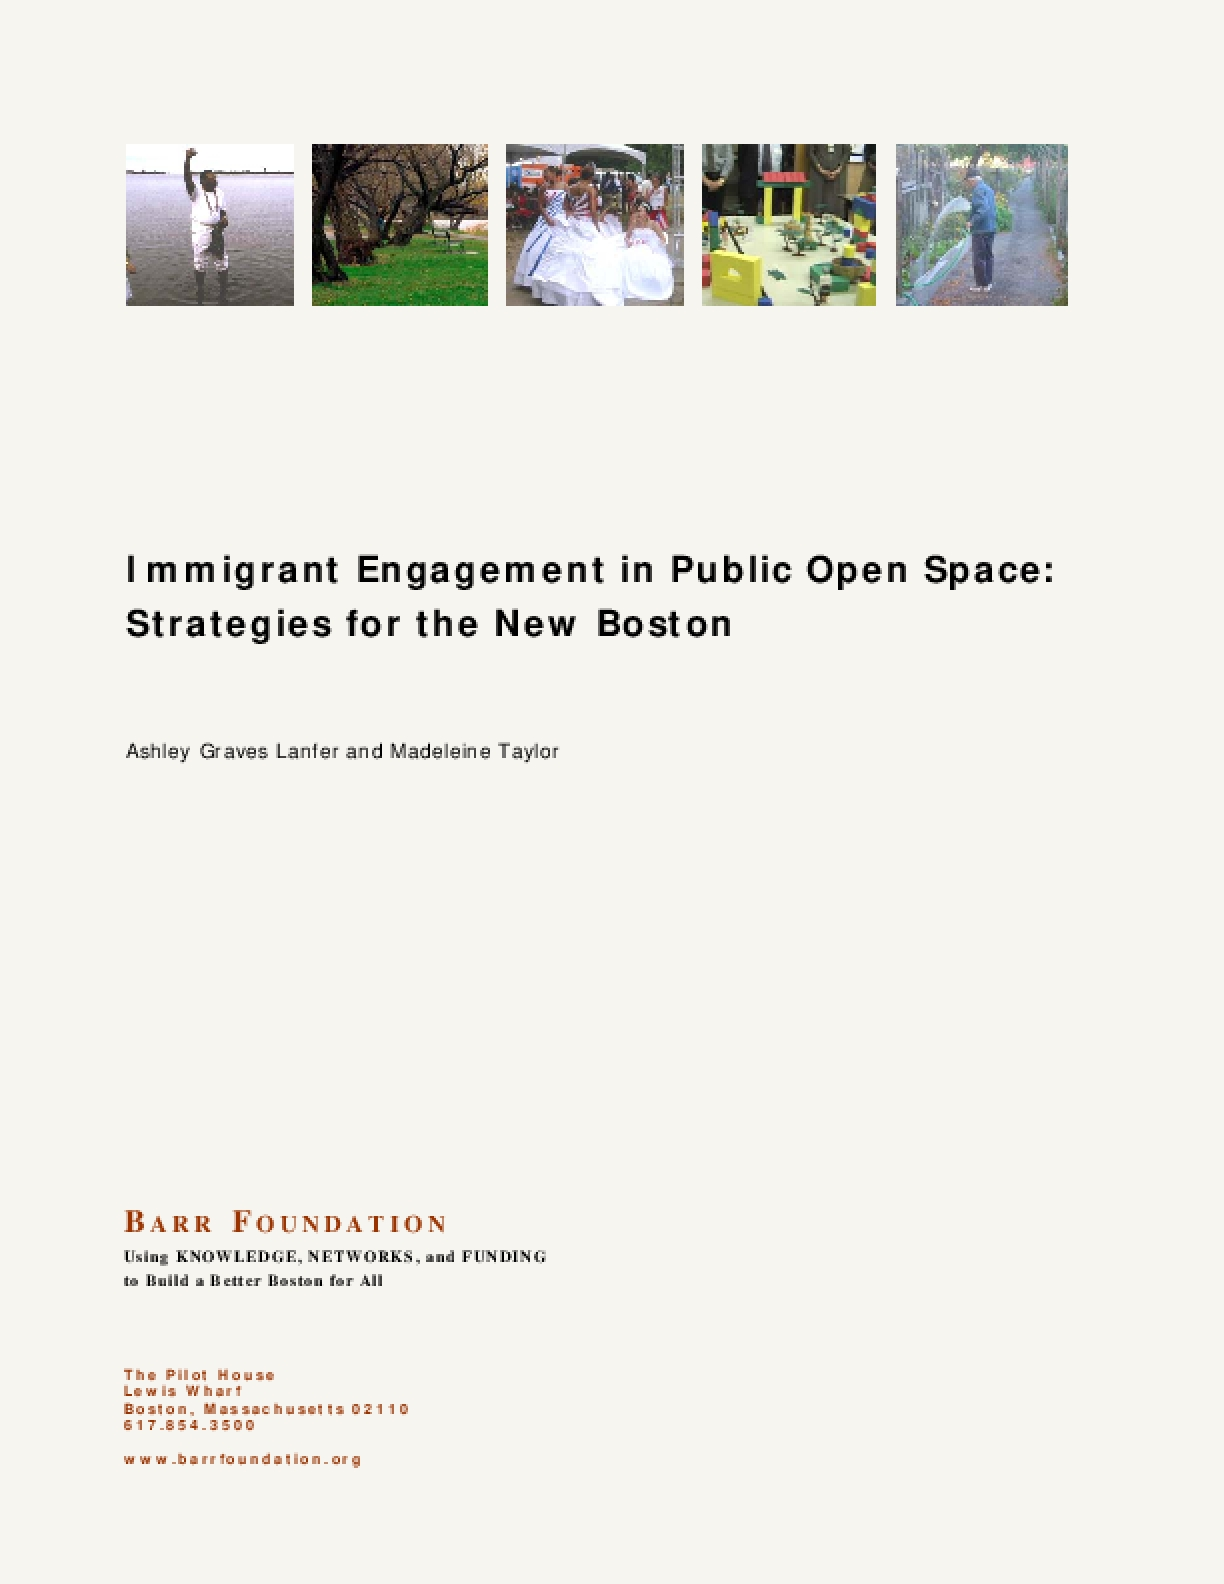 Immigrant Engagement in Public Open Space: Strategies for the New Boston